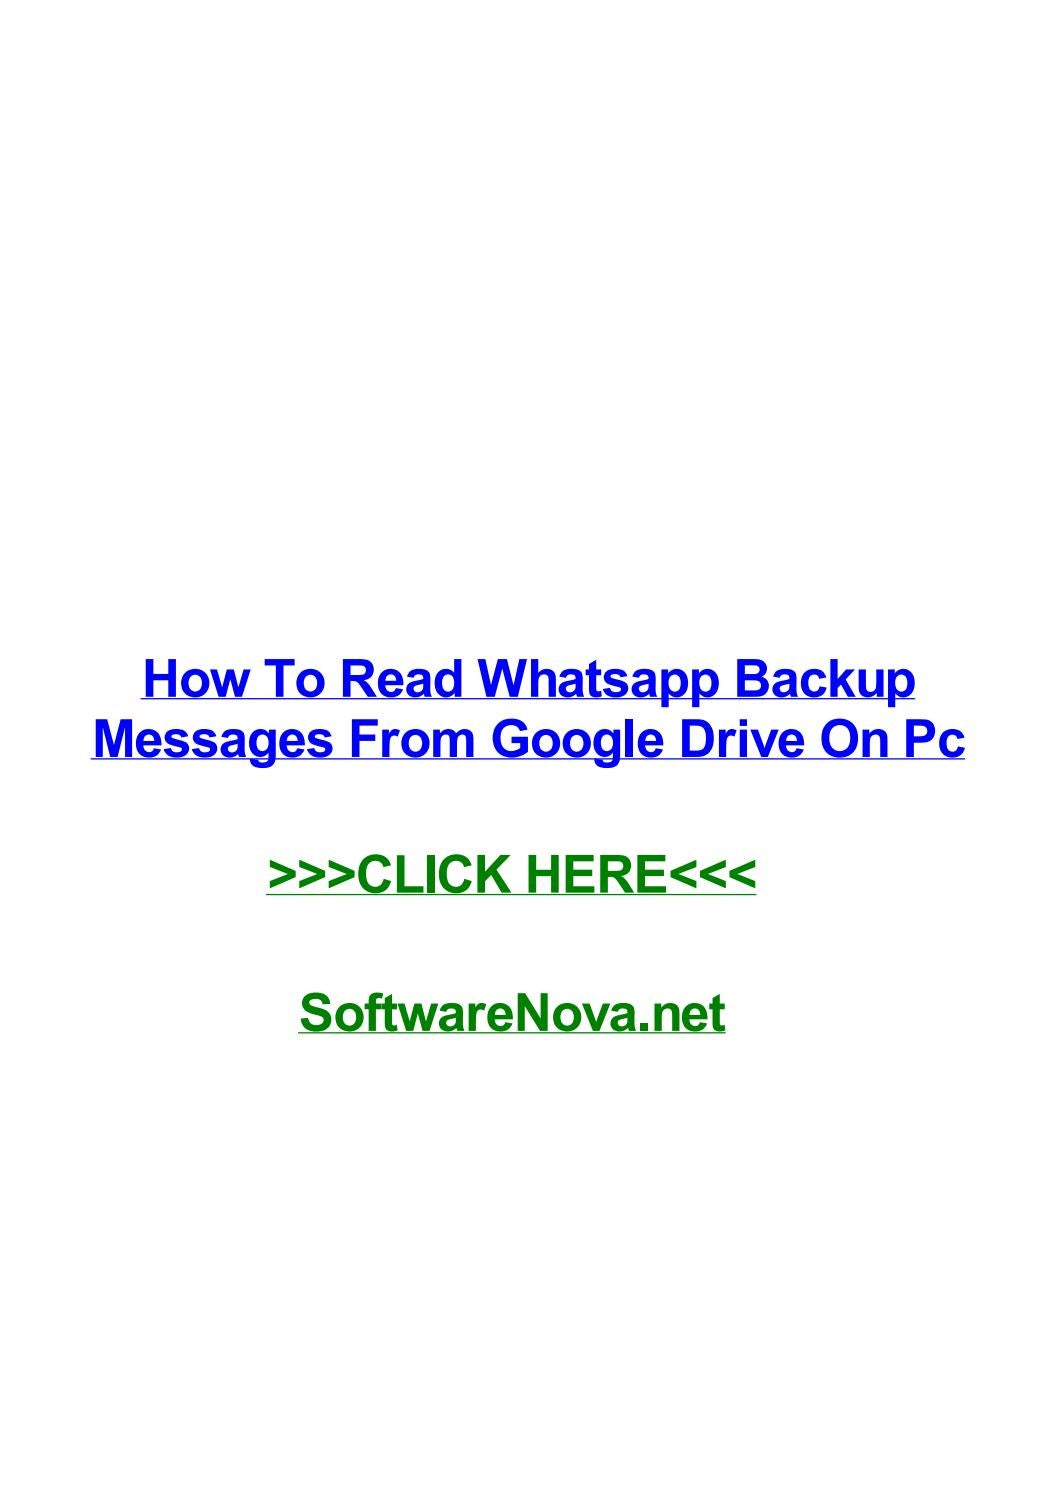 How to read whatsapp backup messages from google drive on pc